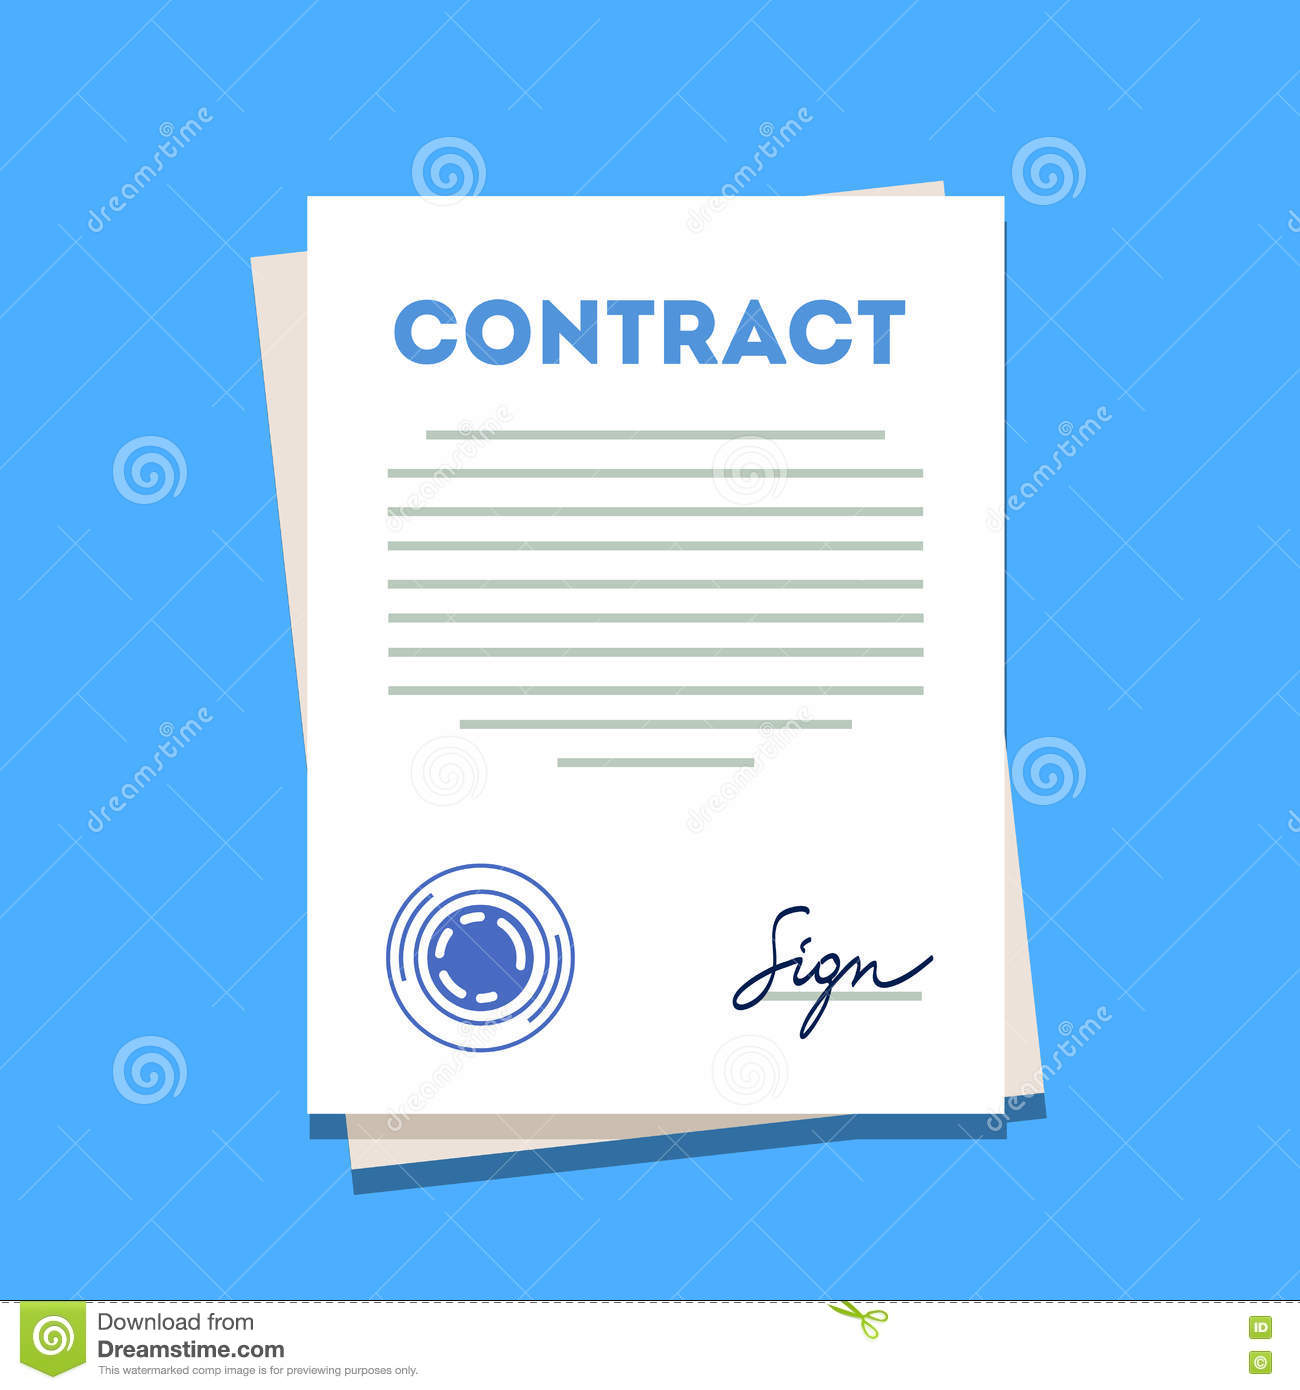 Signed and stamped contract paper icon